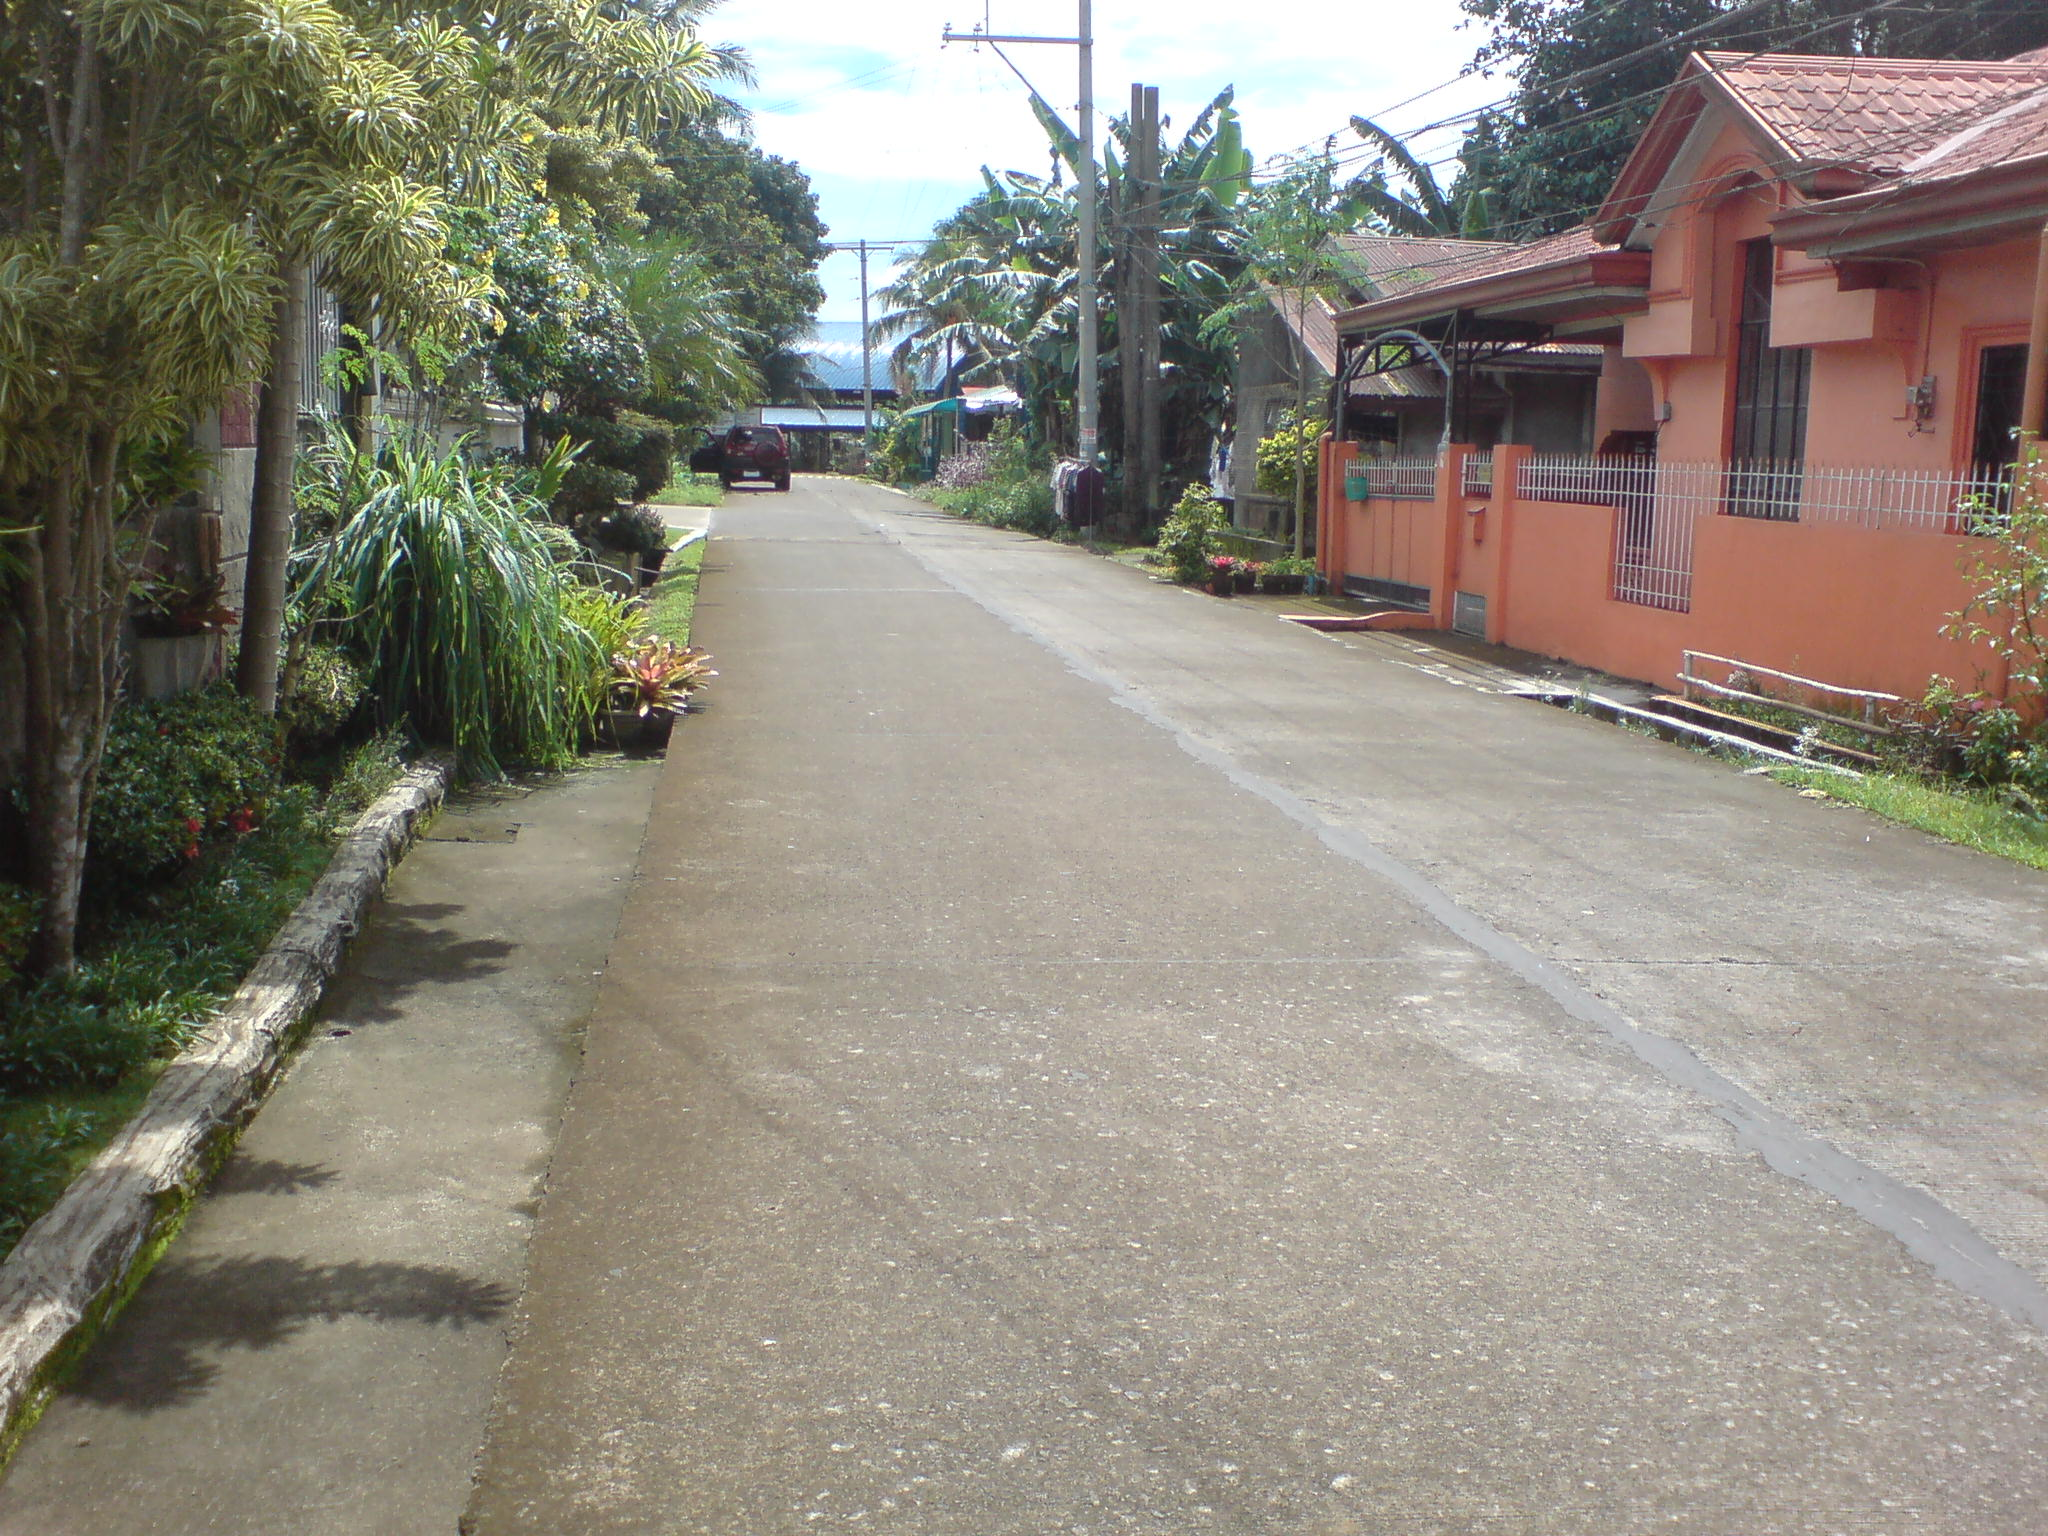 Catlina road leading to lot